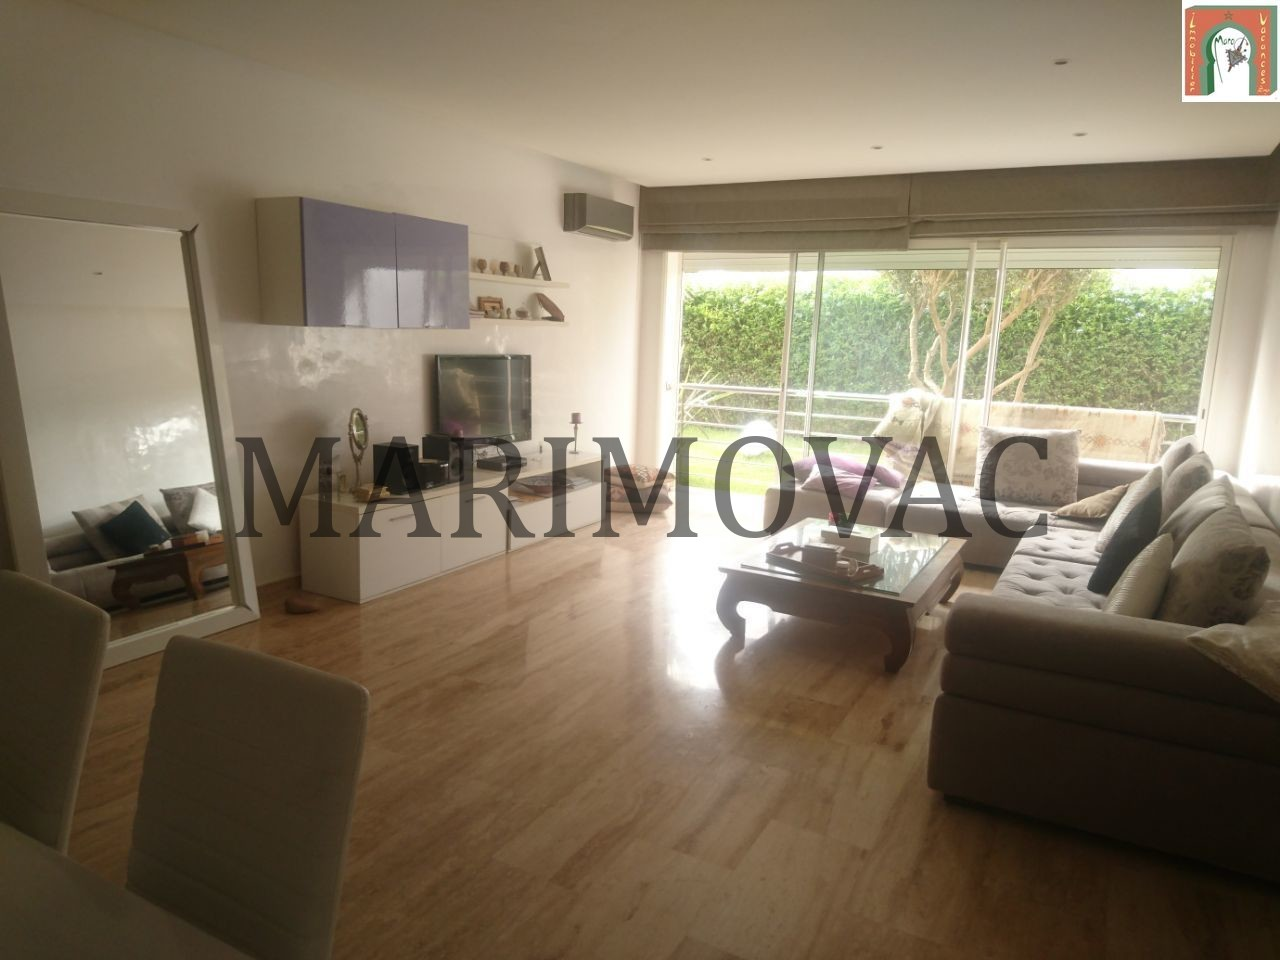 Location <strong>Appartement</strong> Dar Bouazza  <strong>97 m2</strong> - 1 chambre(s)